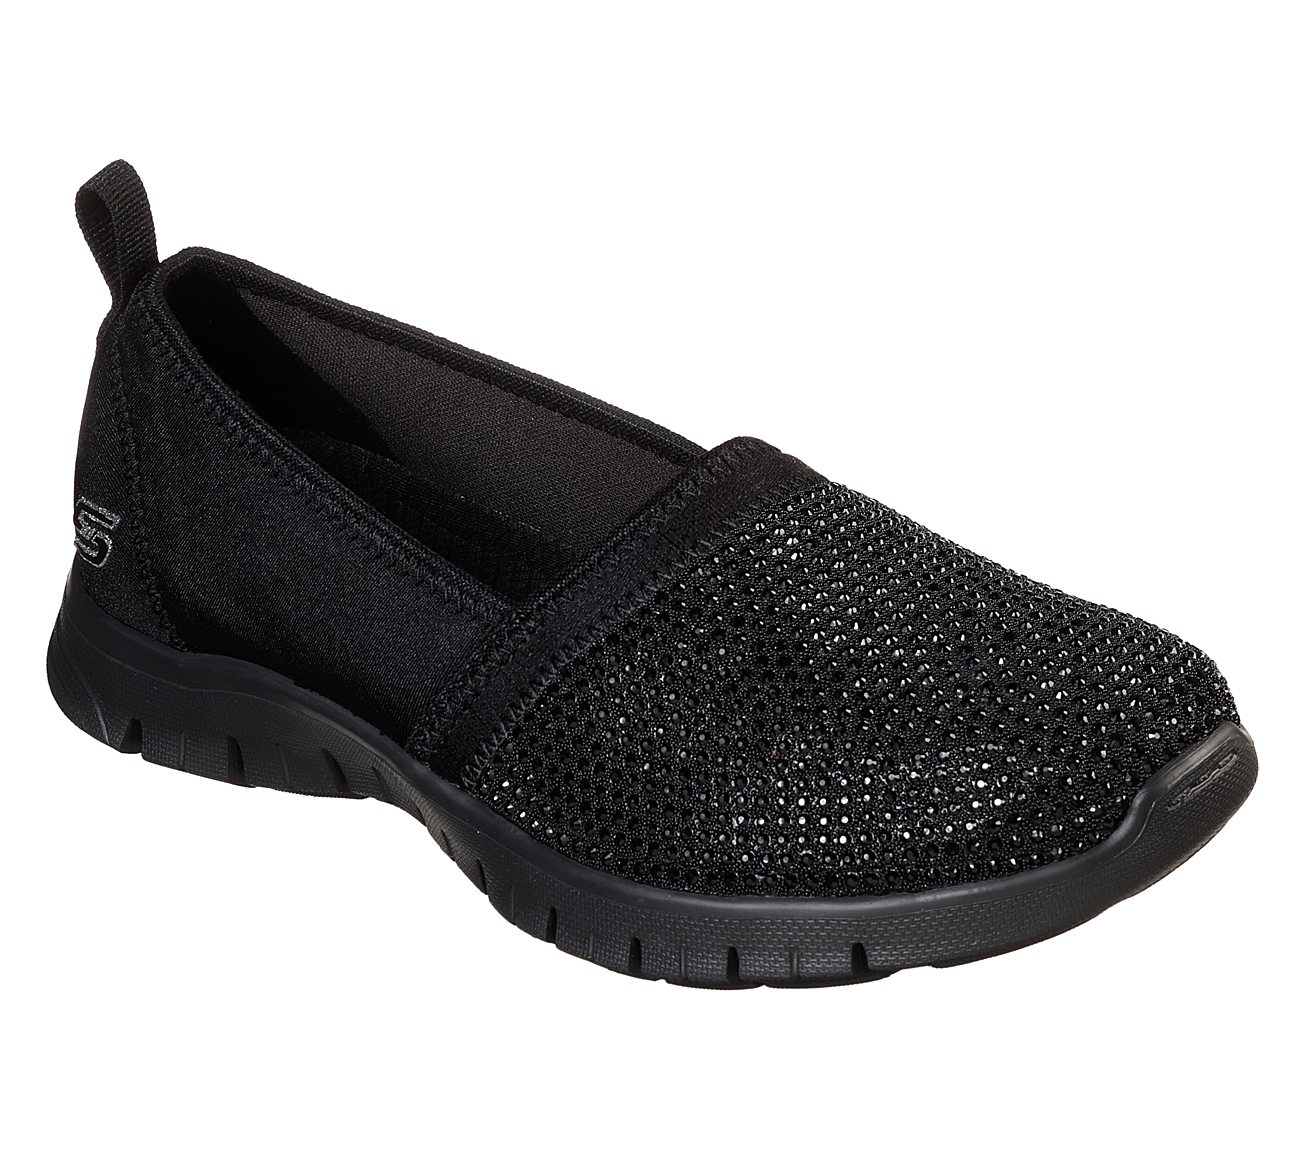 774264ad4c79 Buy SKECHERS Relaxed Fit  EZ Flex Renew - Shimmer Show Sport Active ...